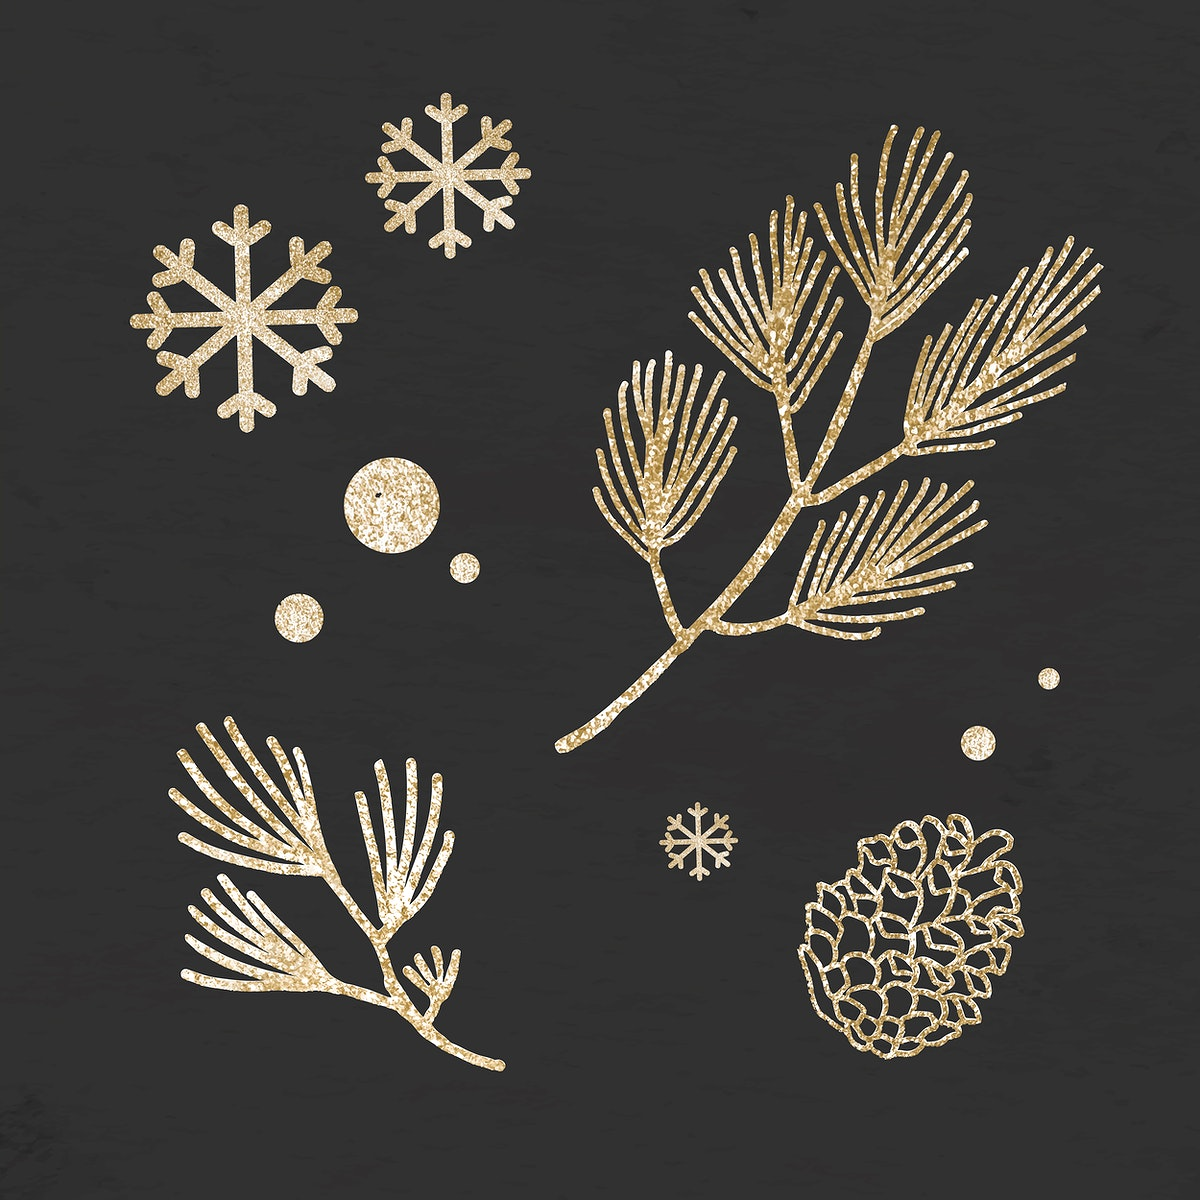 Glittery Christmas tree plants with snowflakes on black background vector